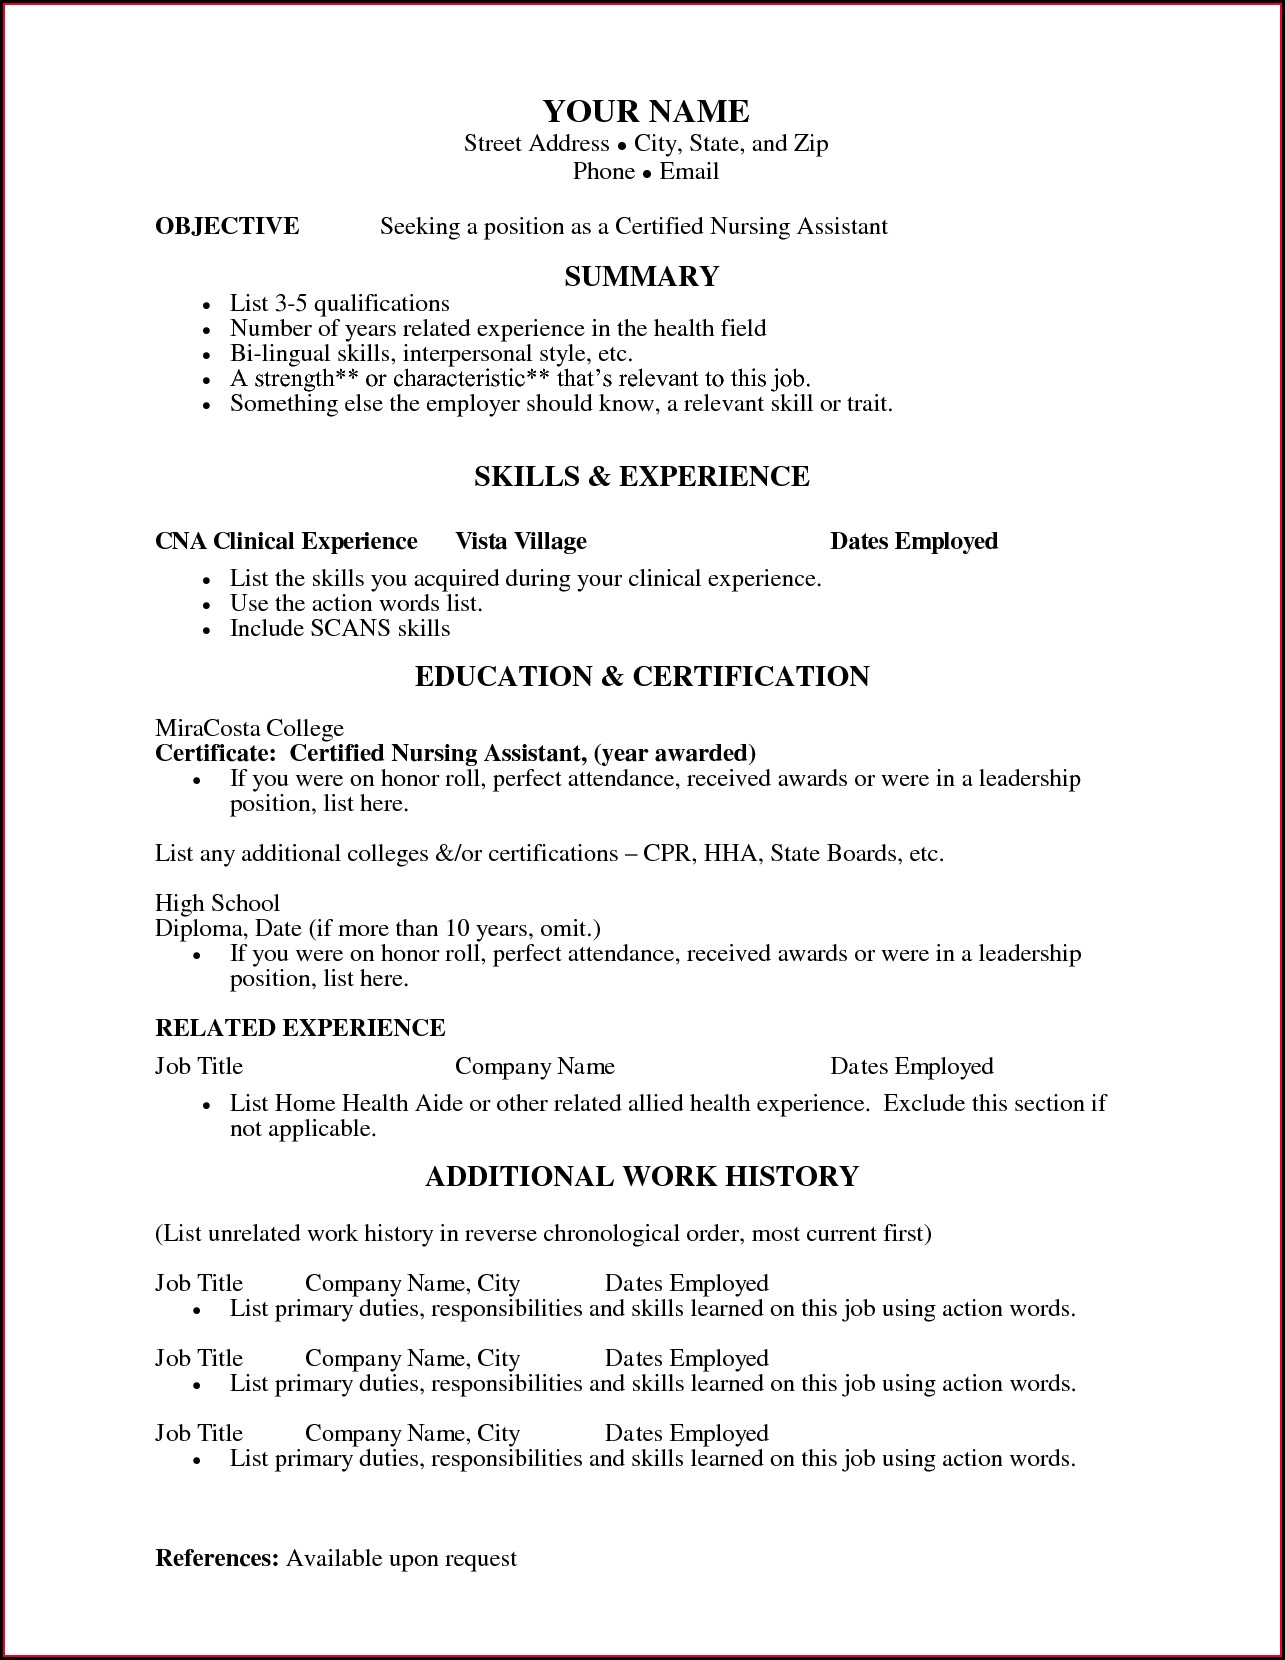 Free Sample Resume For Certified Nursing Assistant